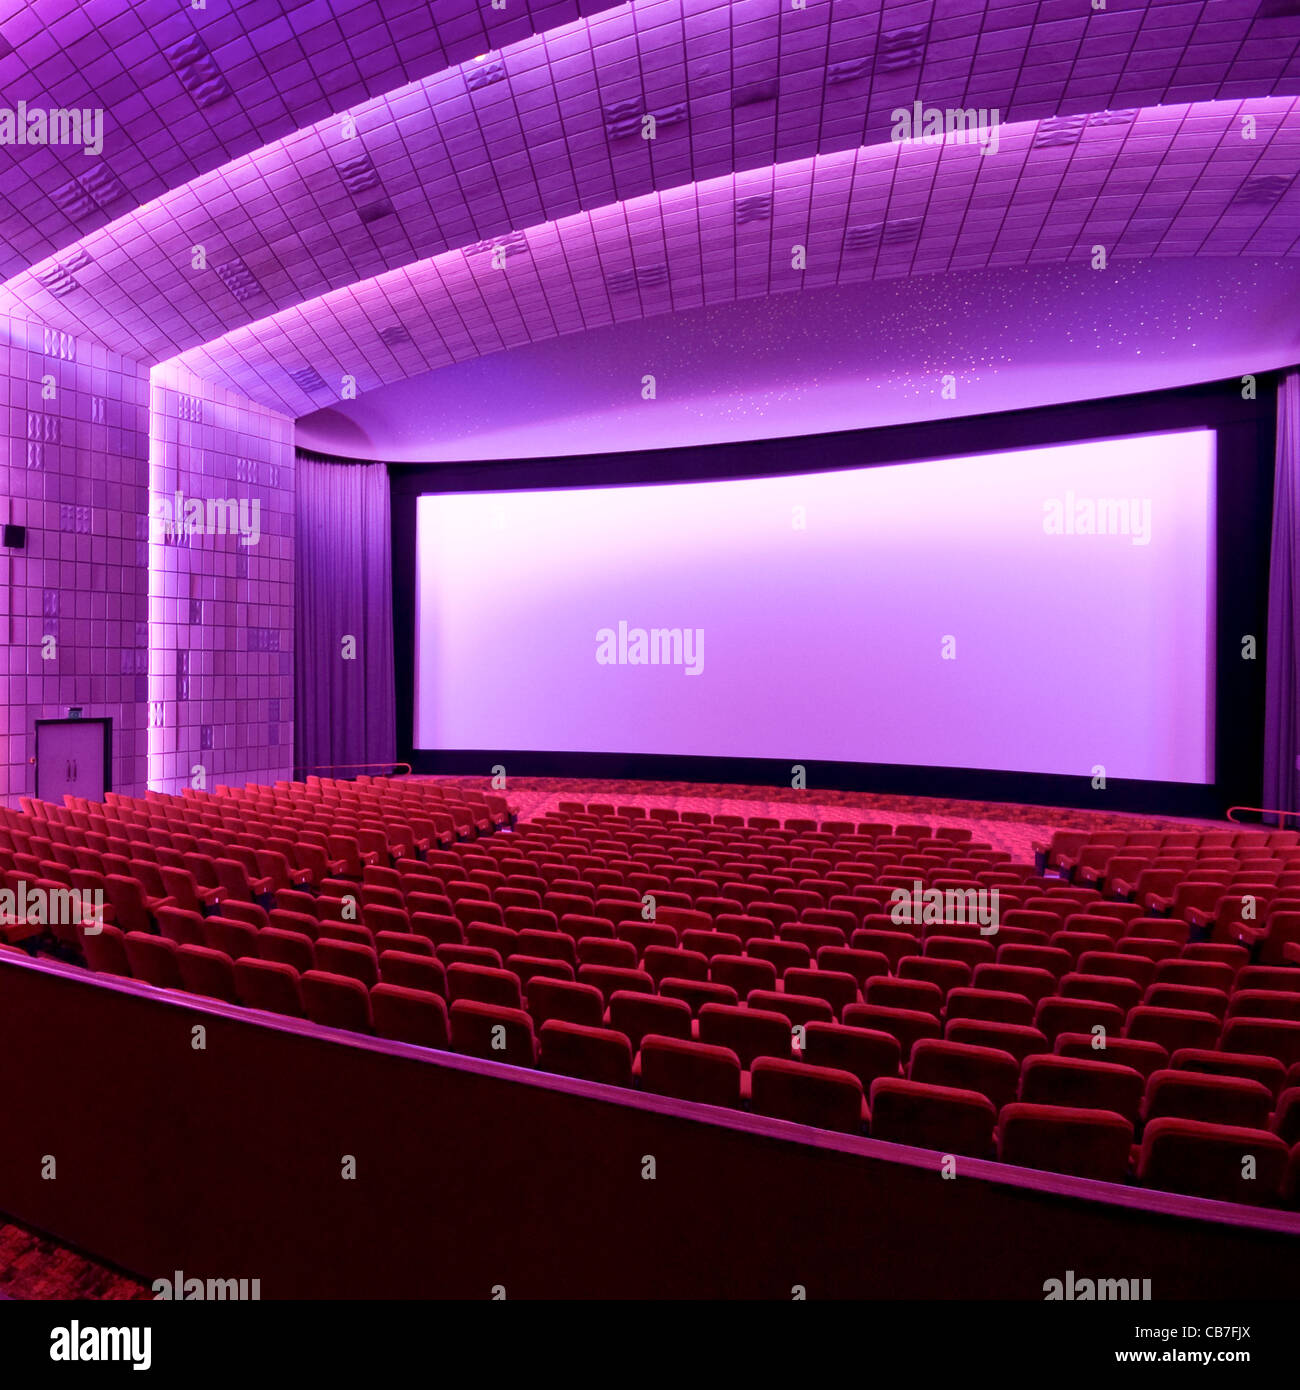 The seats and screen of screen 7 within The Empire, Leicester Square - Stock Image